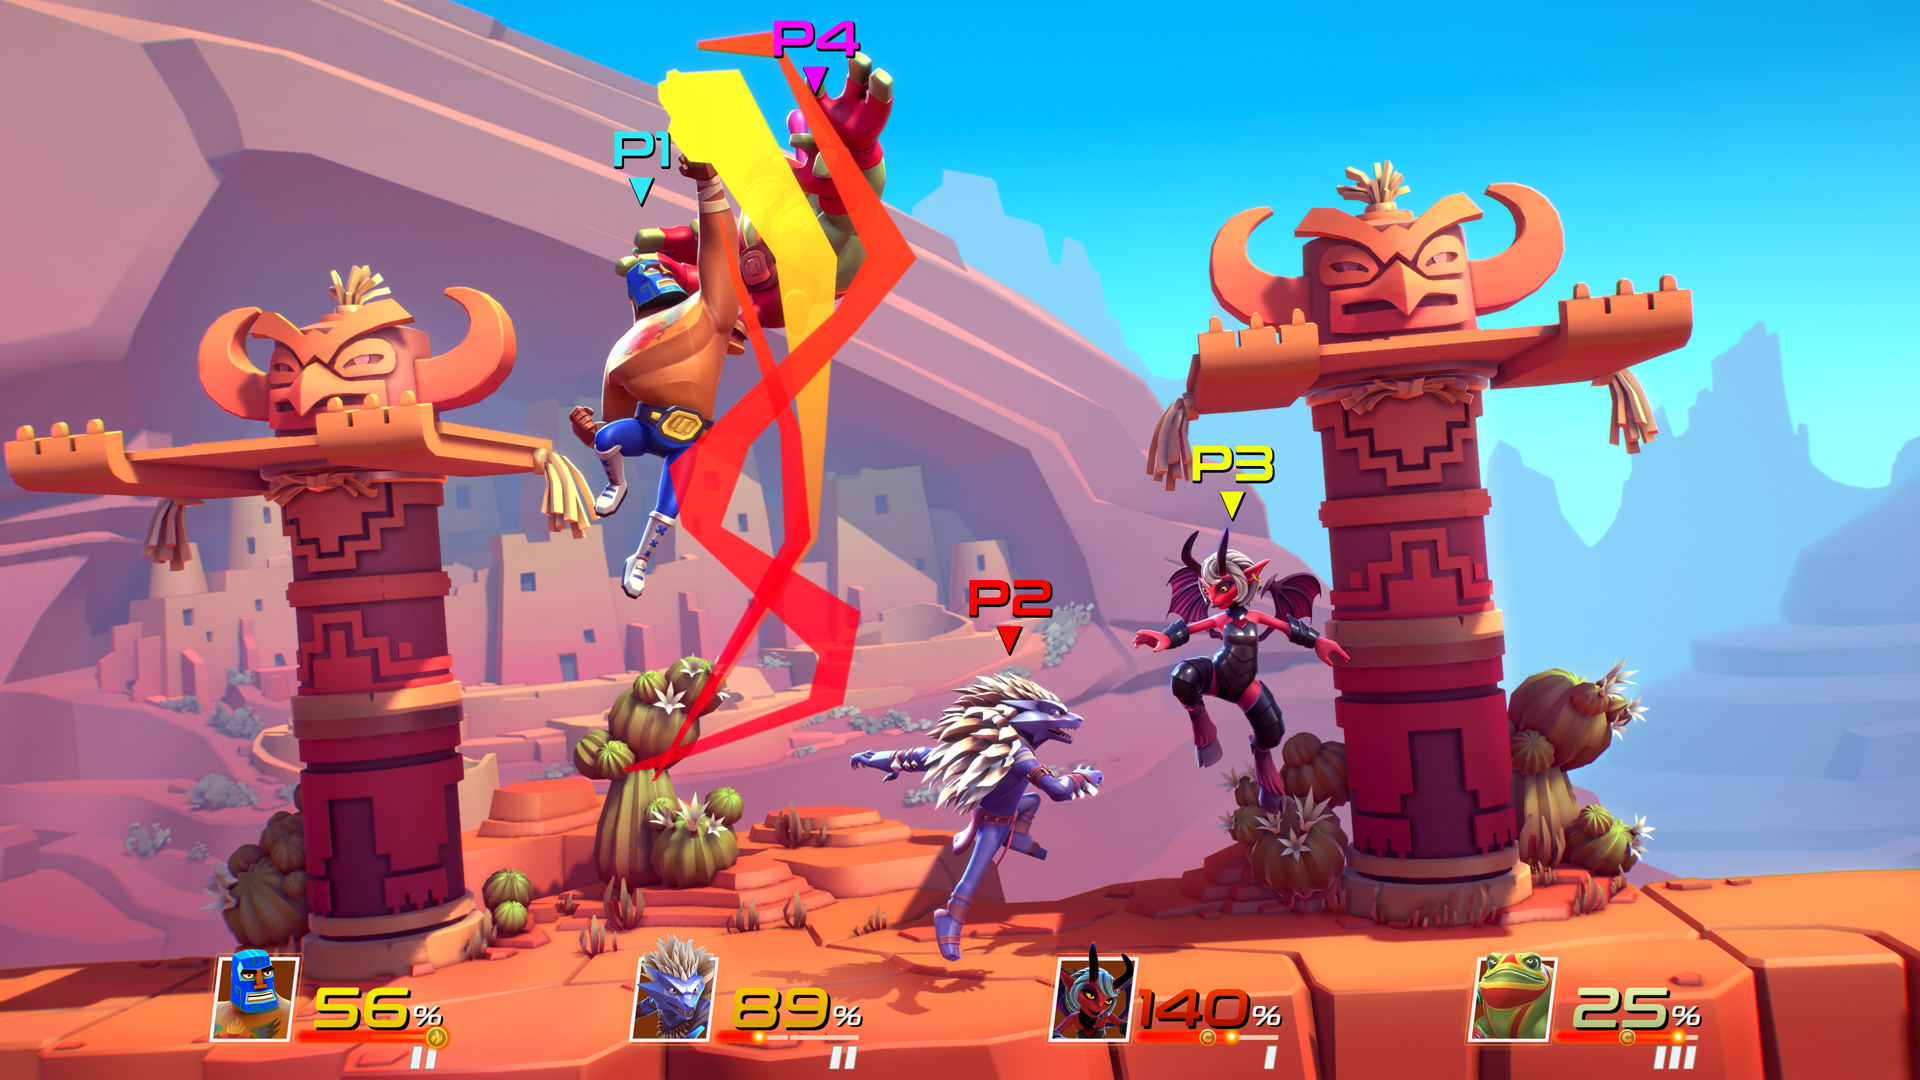 Brawlout - 4v4 screen 2